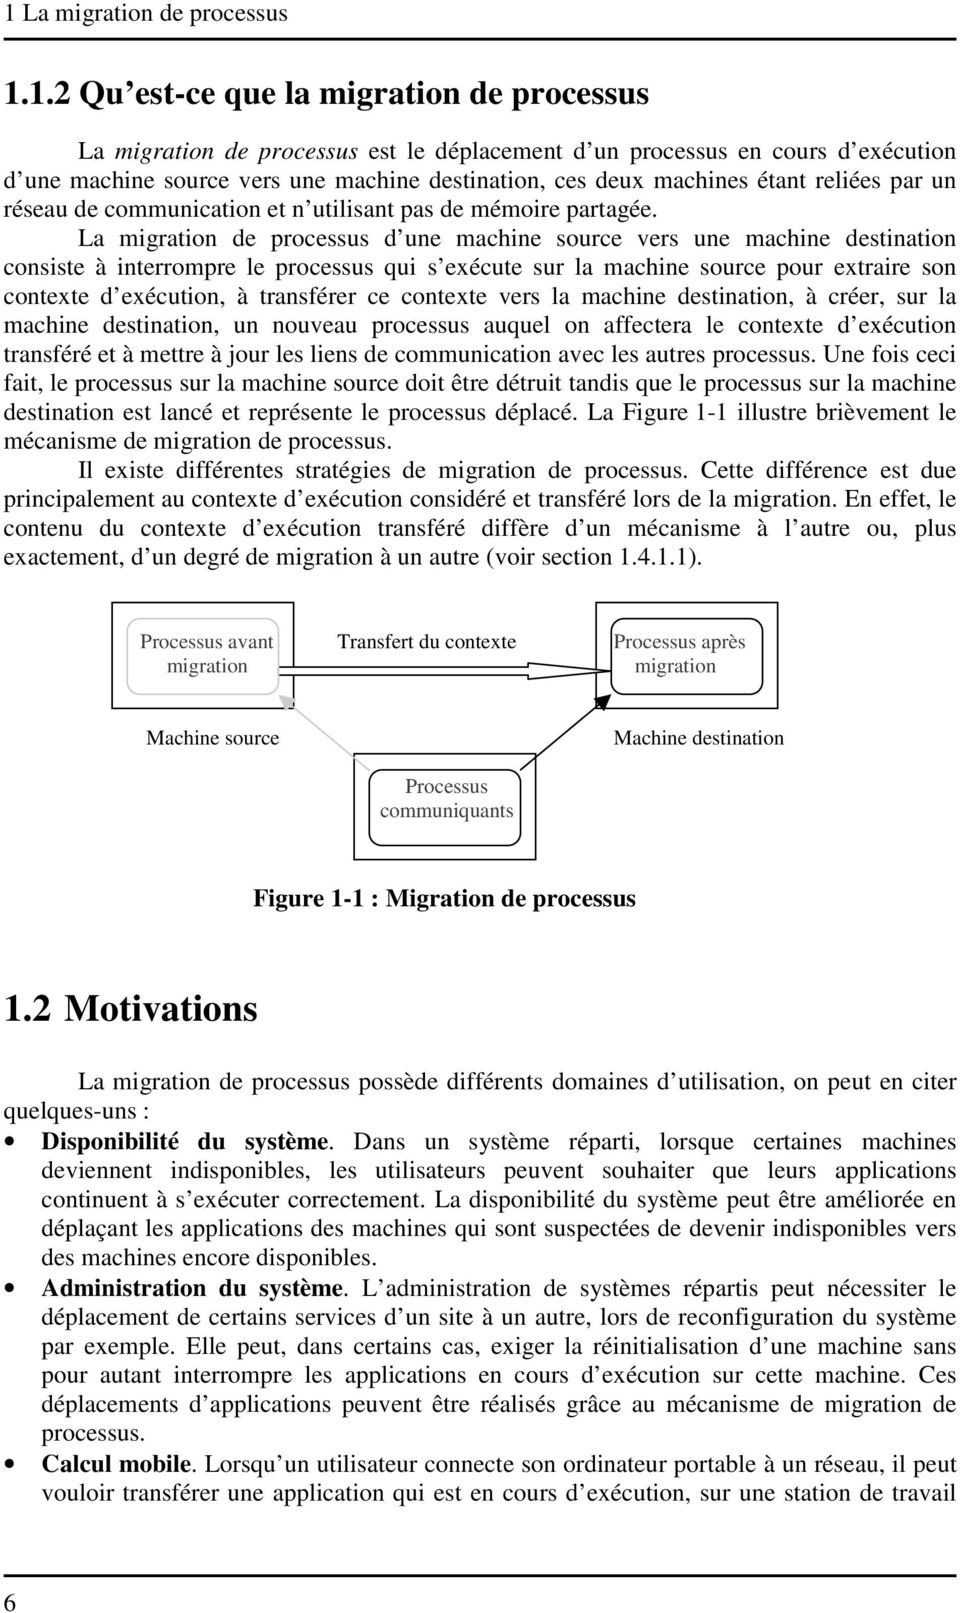 La migration de processus d une machine source vers une machine destination consiste à interrompre le processus qui s exécute sur la machine source pour extraire son contexte d exécution, à